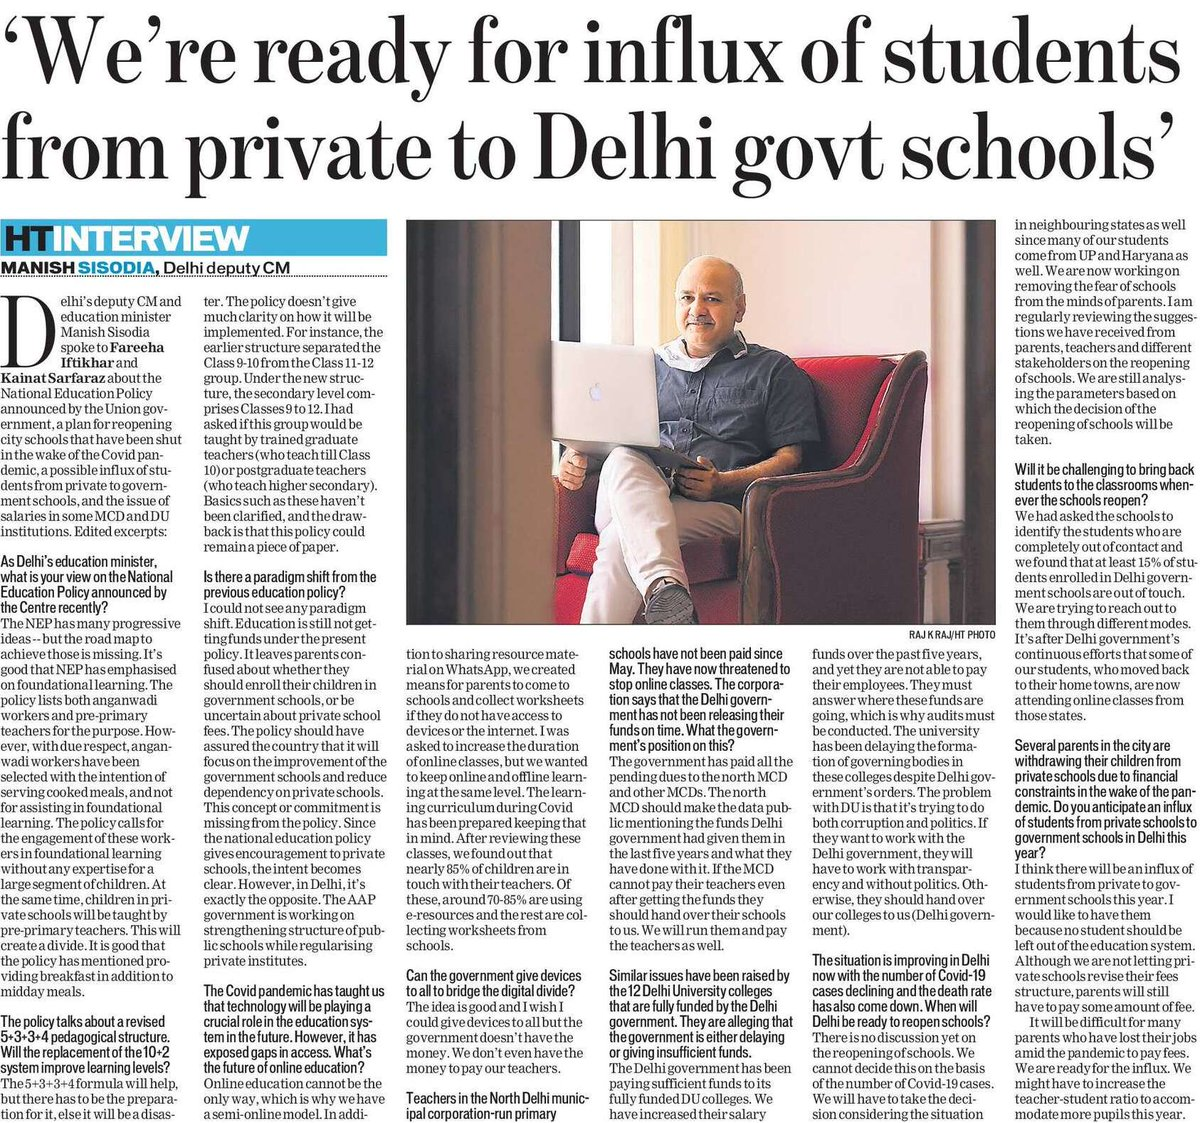 Were ready for influx of students from private to Delhi Govt schools: Honble Dy CM shri @msisodia Read Honble Deputy Chief Ministers exclusive interview with Hindustan times